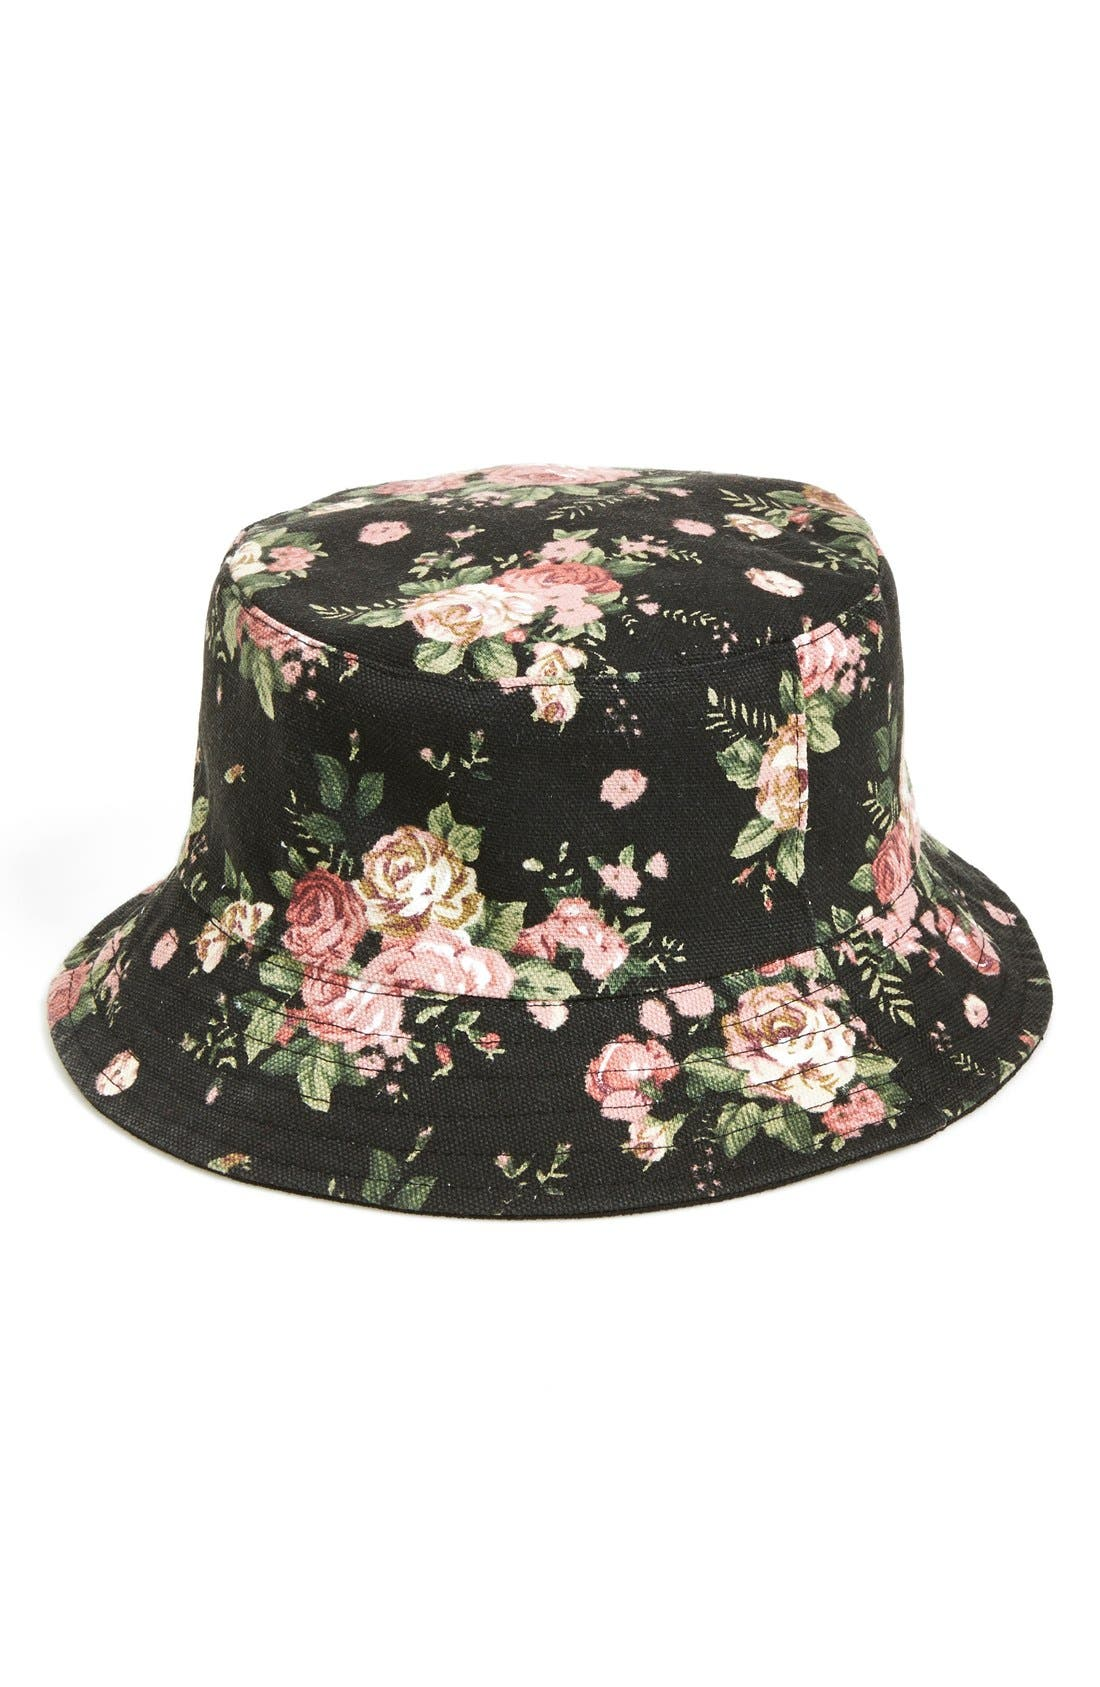 Alternate Image 1 Selected - Amici Accessories Reversible Bucket Hat (Juniors)